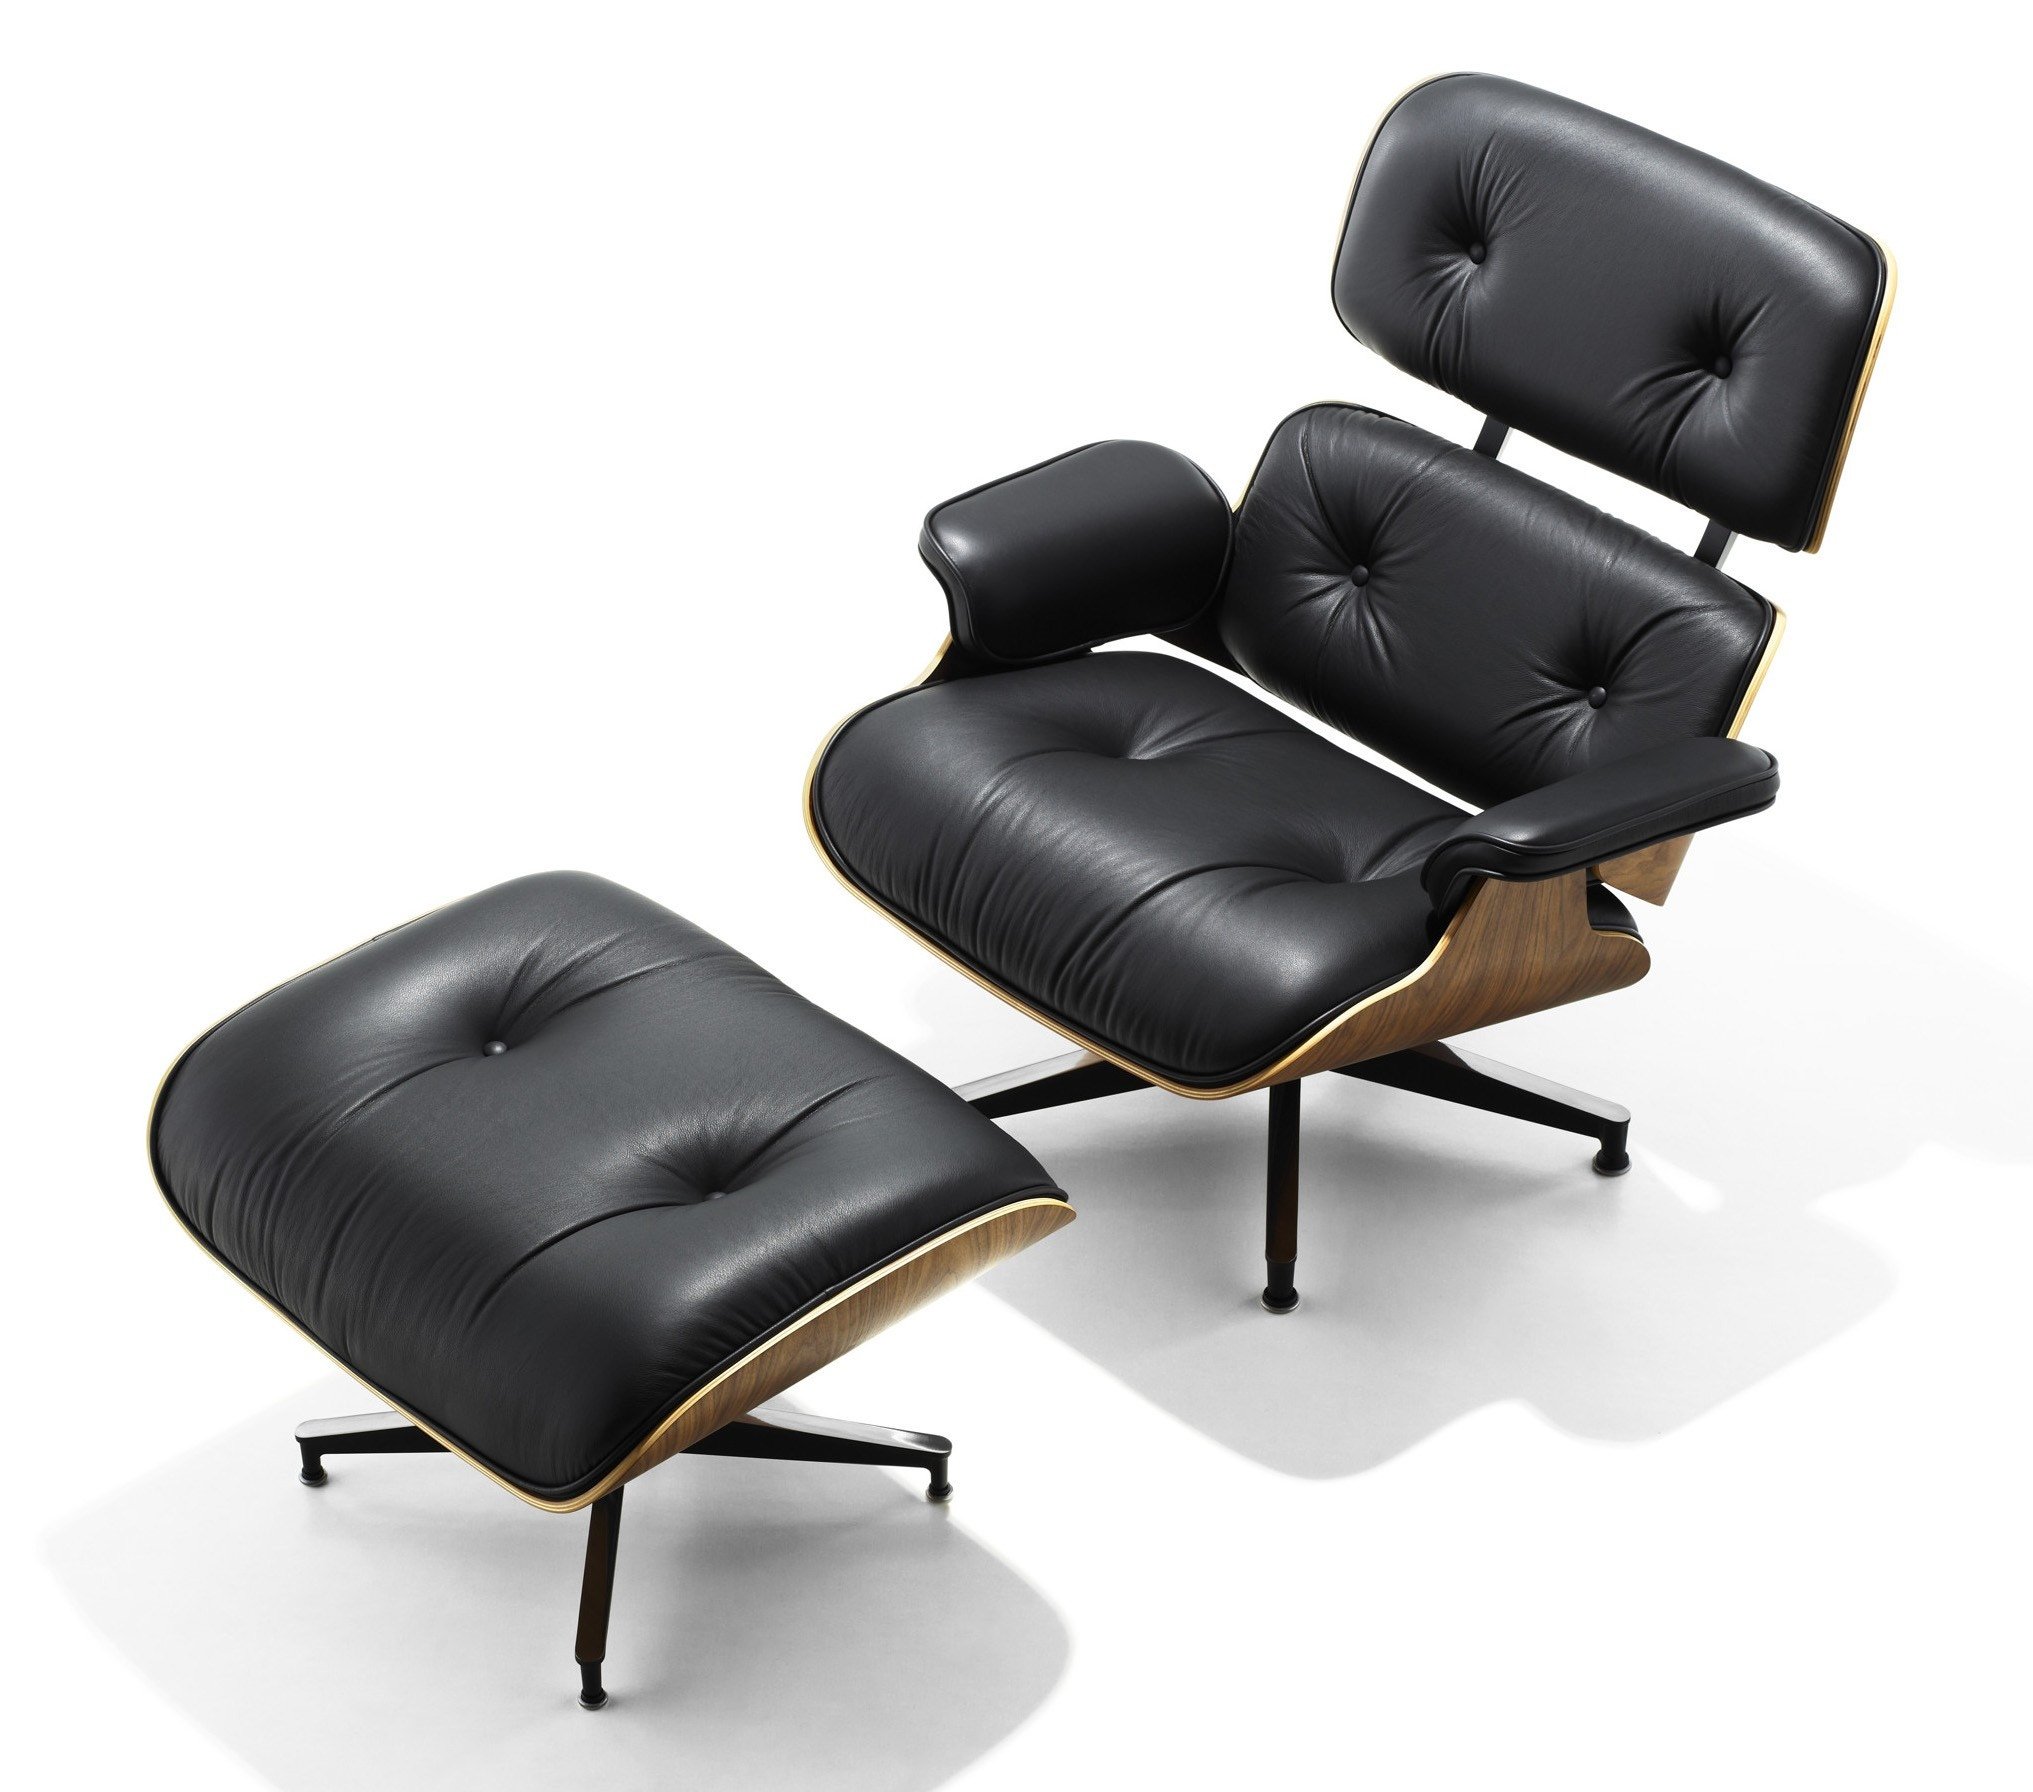 herman miller lounge chair. Herman Miller Eames® Lounge Chair And Ottoman I